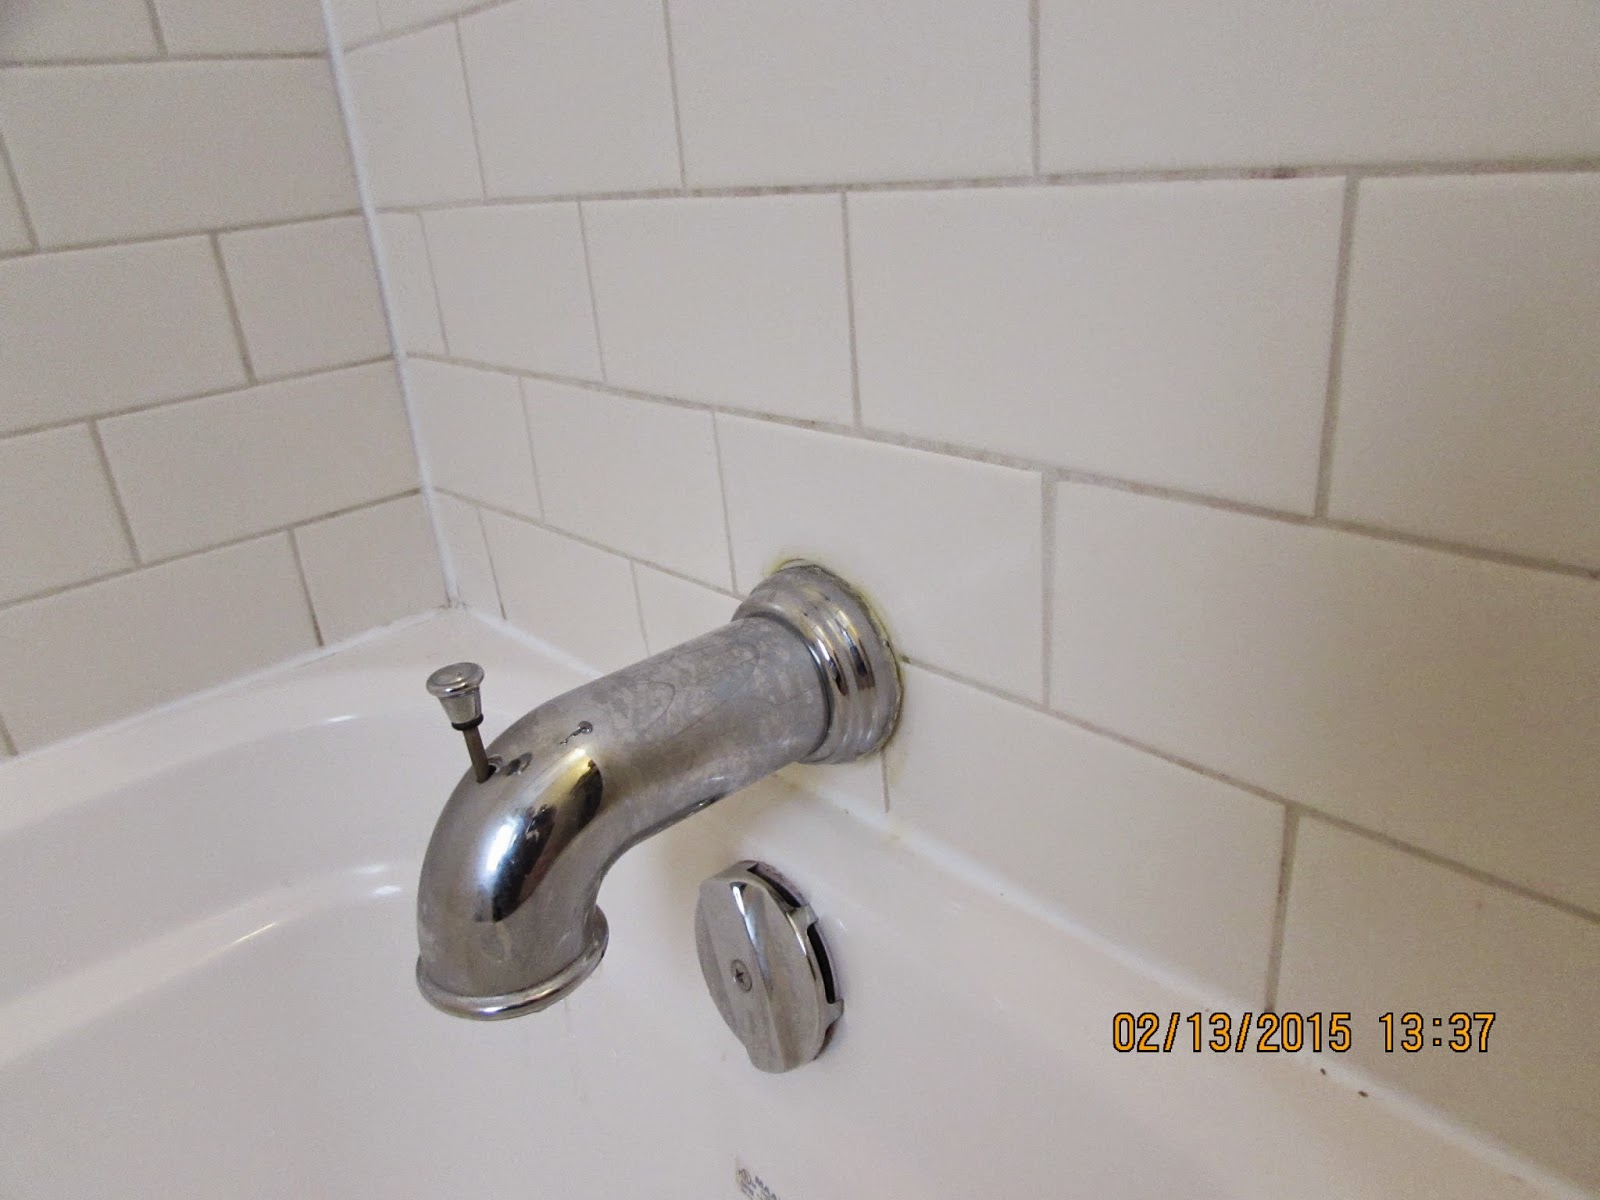 Bathroom Caulking Inspected By 42 Ib42 Ottawa Home Inspections Caulking In The